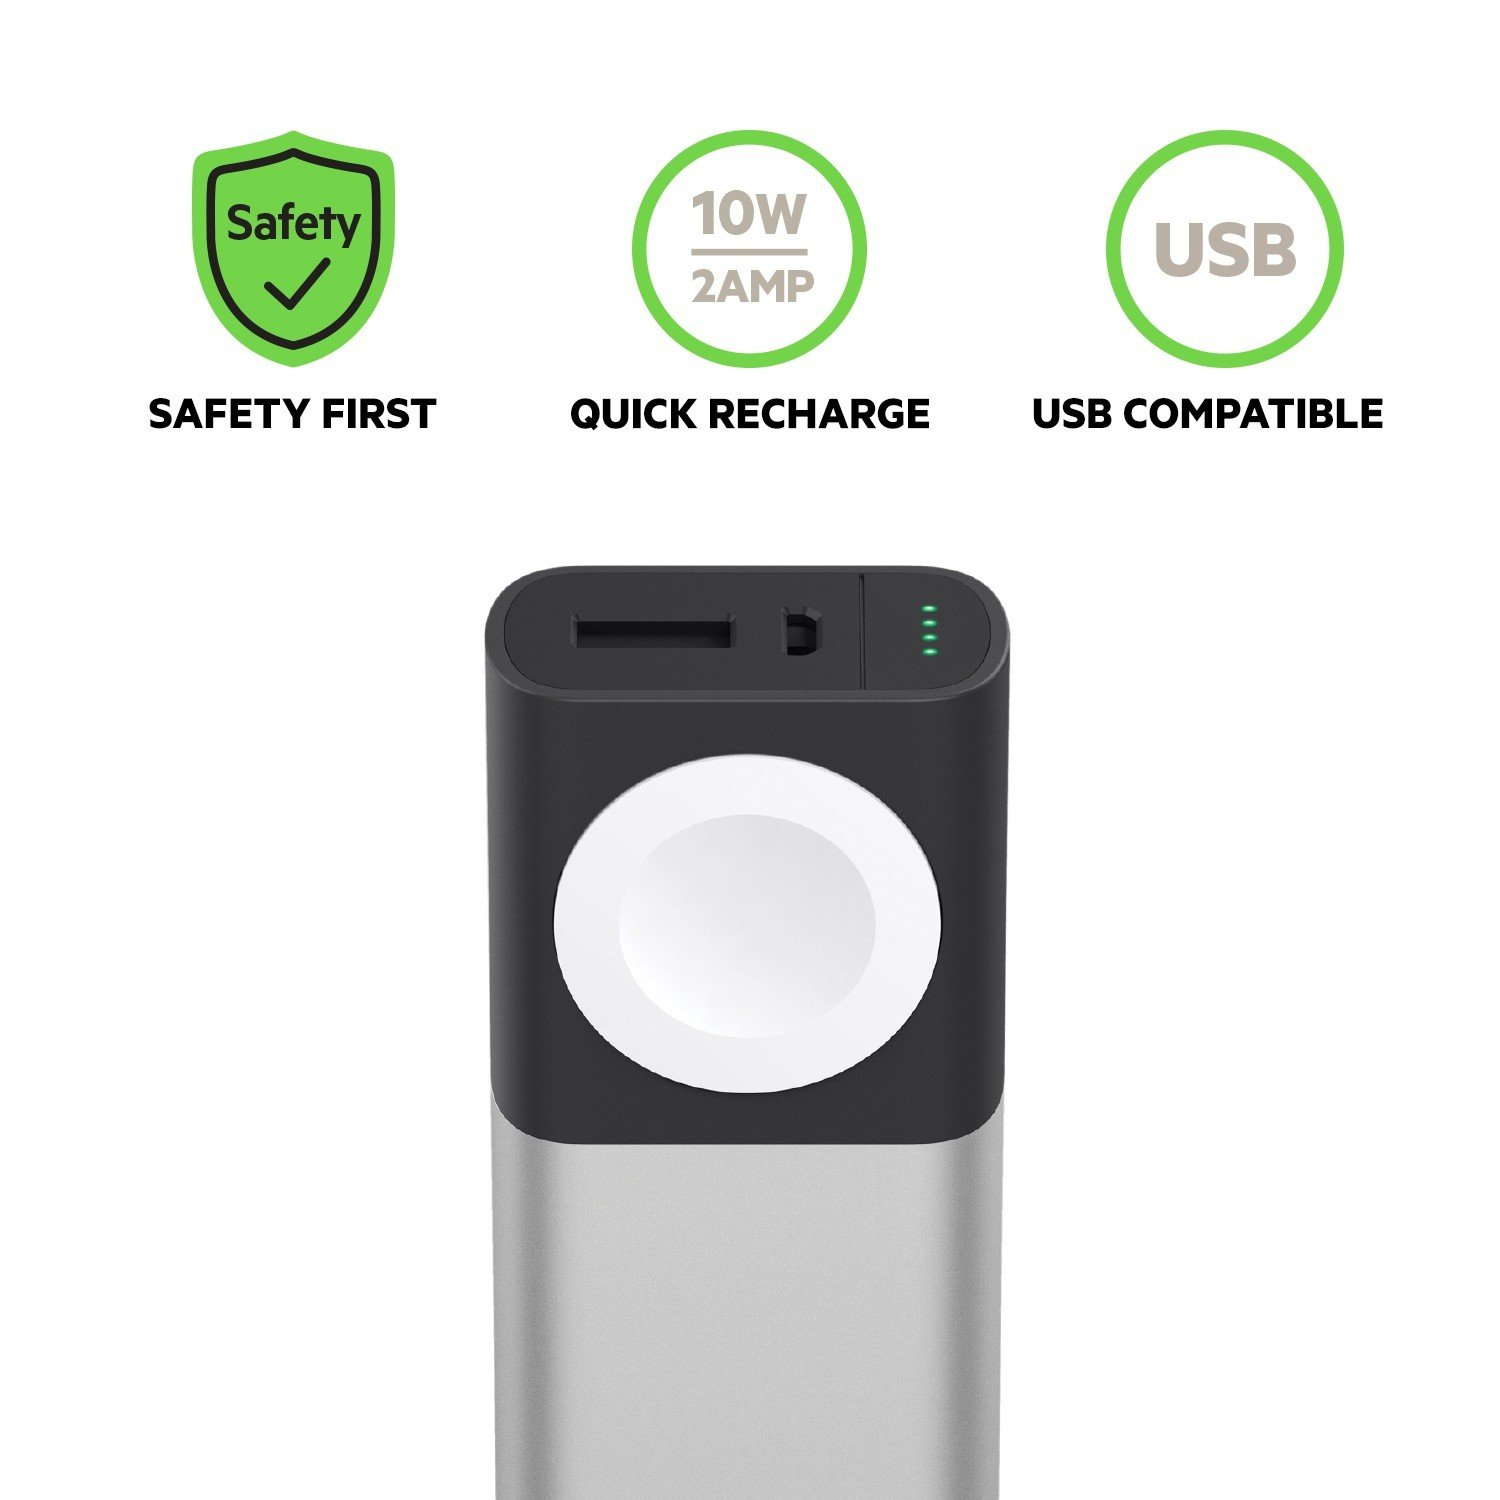 Belkin Valet Charger 6700 mAh Power Bank for Apple Watch + iPhone  (MFi-Certifed Apple Watch Charger + iPhone Power Bank for iPhone XS, XS  Max, XR,